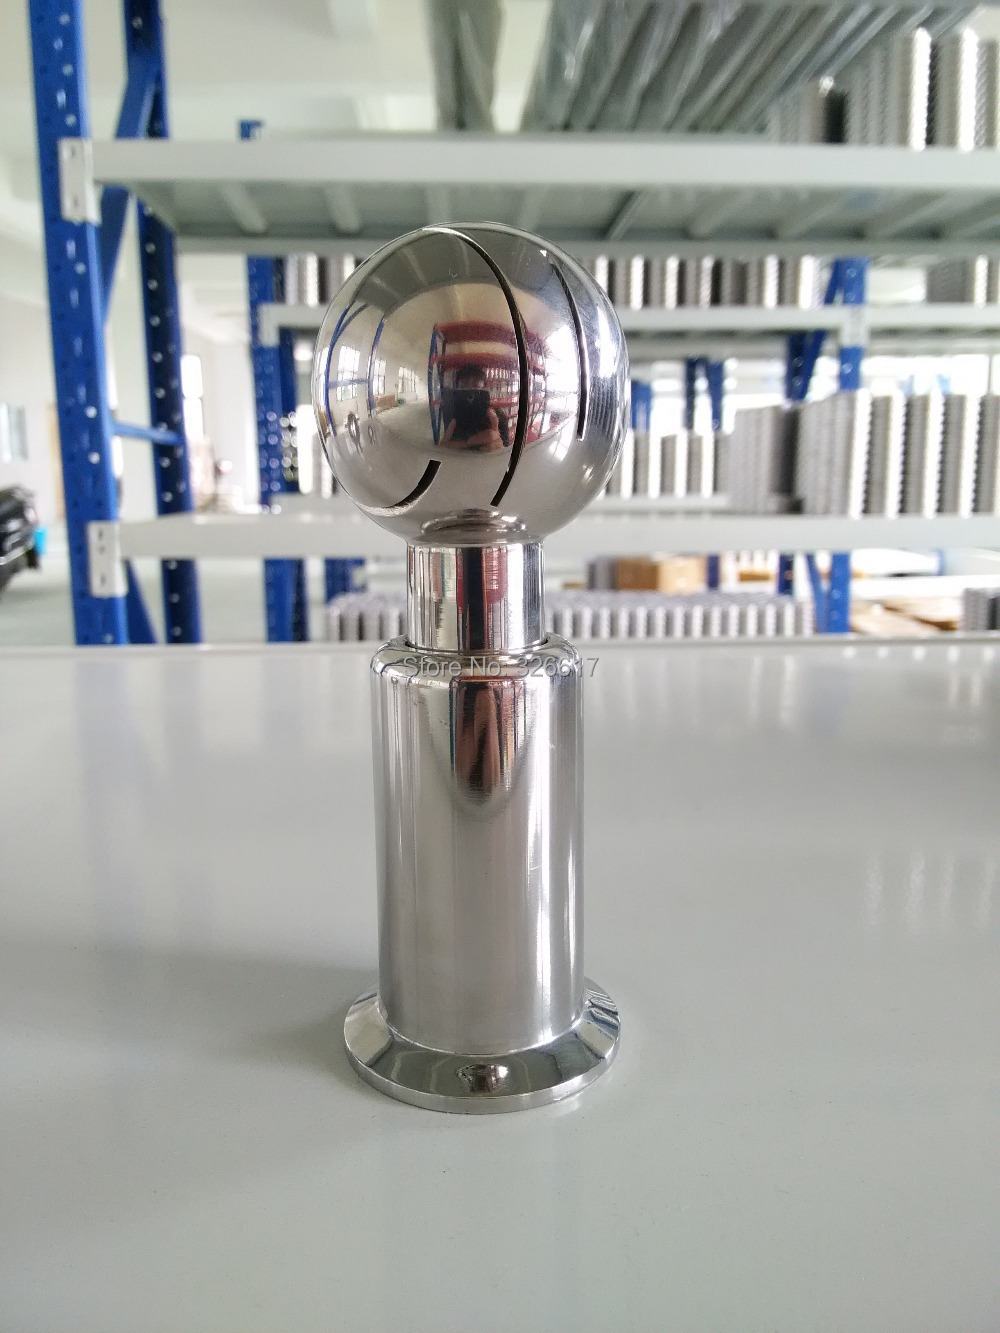 1.5 inch Tri Clamp Rotating CIP Spray Ball 360 Degree Cleaning Ball SS304 Stainless Steel Food Grade zuczug 1 5 ss304 stainless steel female rotary spray cleaner sanitary nipple rotating cleaning ball nozzle horn washer tank